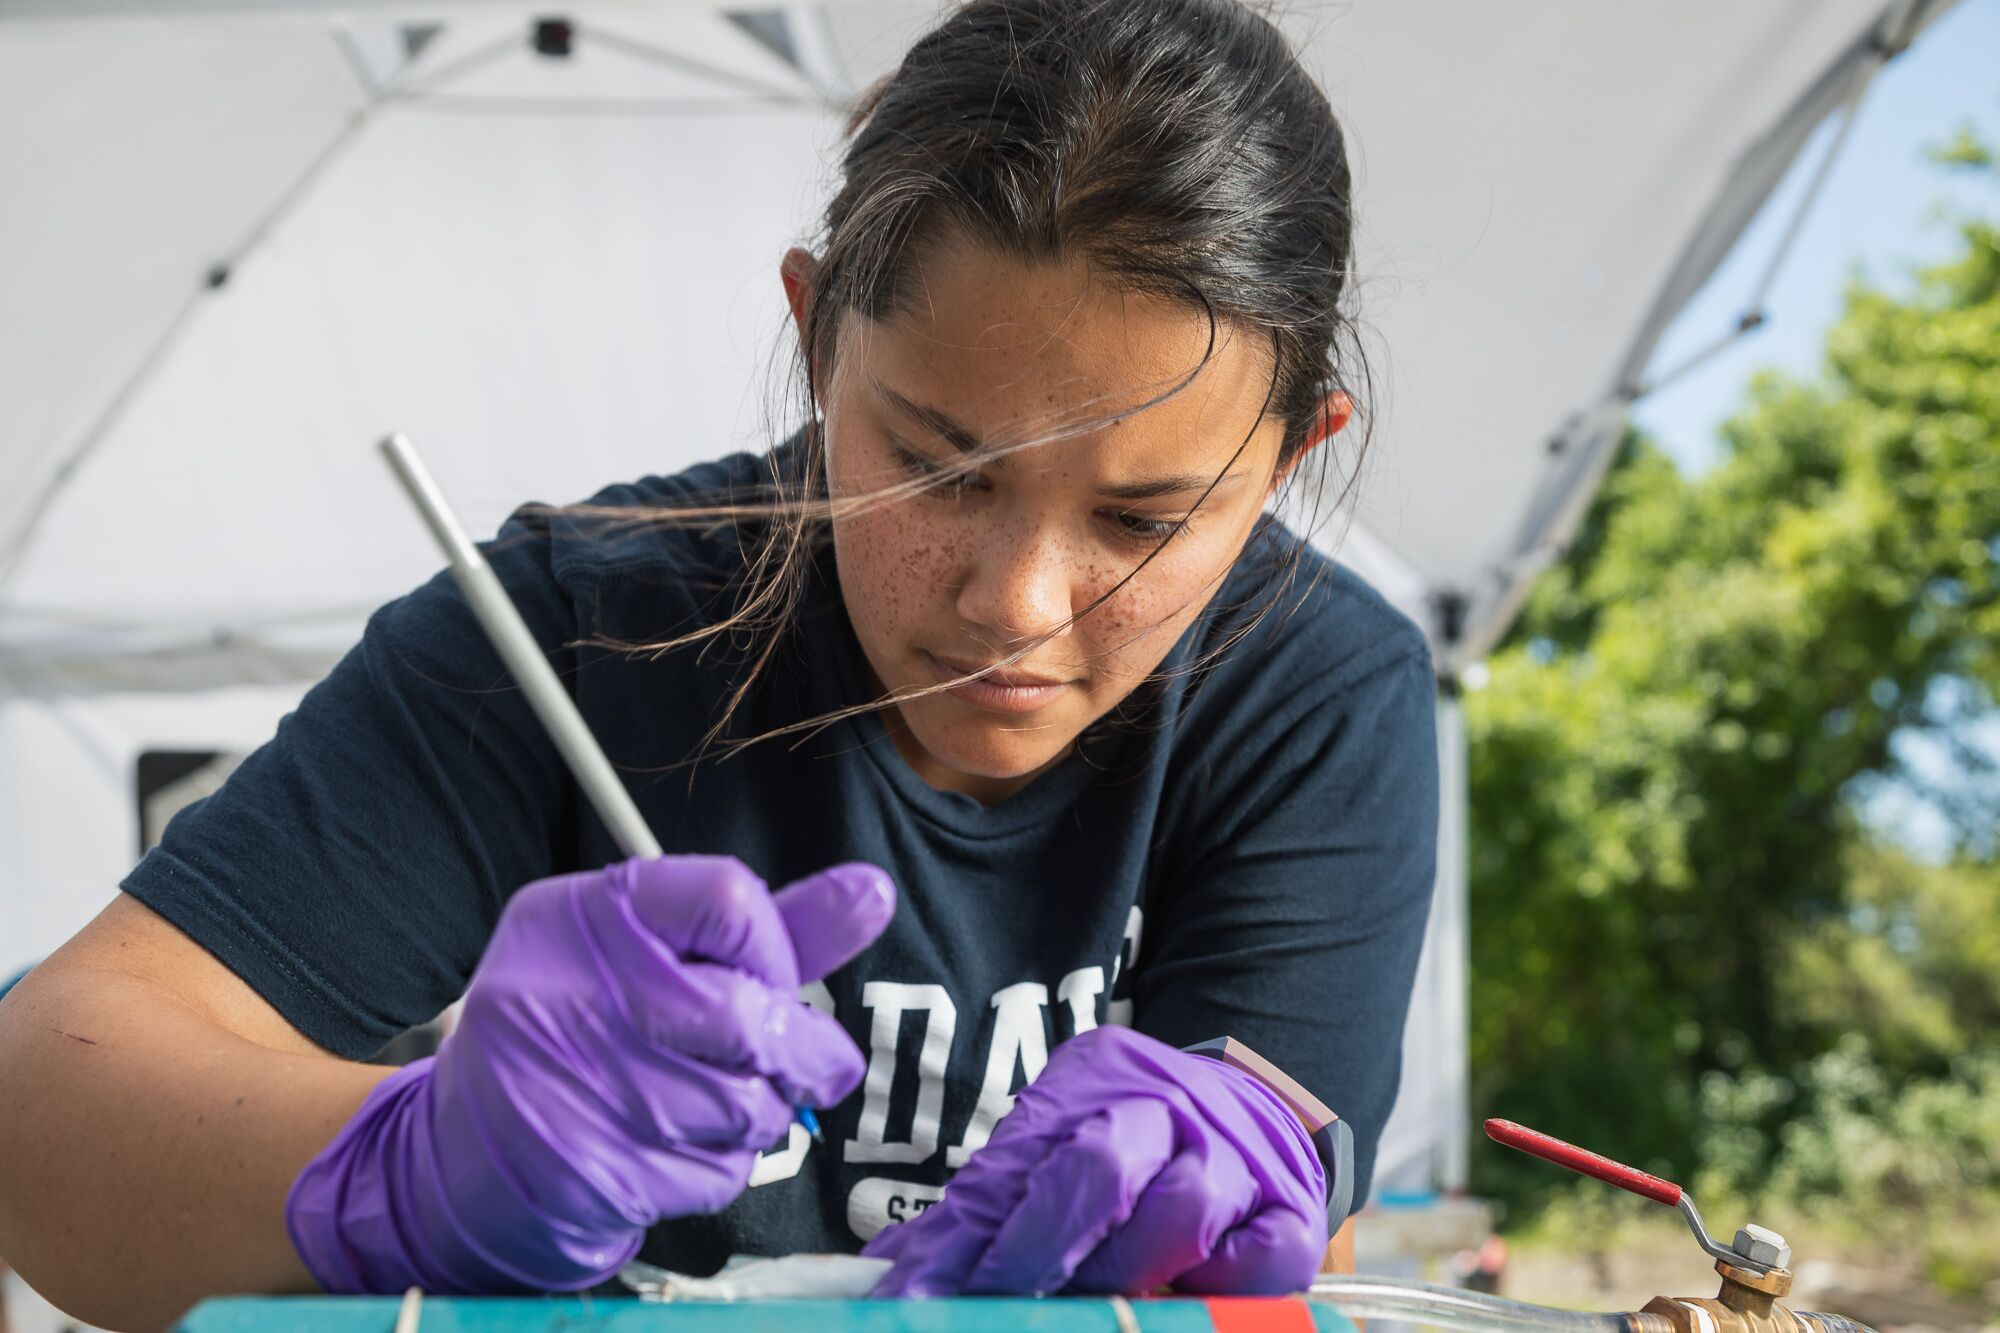 Rachelle Tallman, a graduate student at the University of California, Davis, makes an incision in the abdomen of a salmon fry to insert a tracking tag.